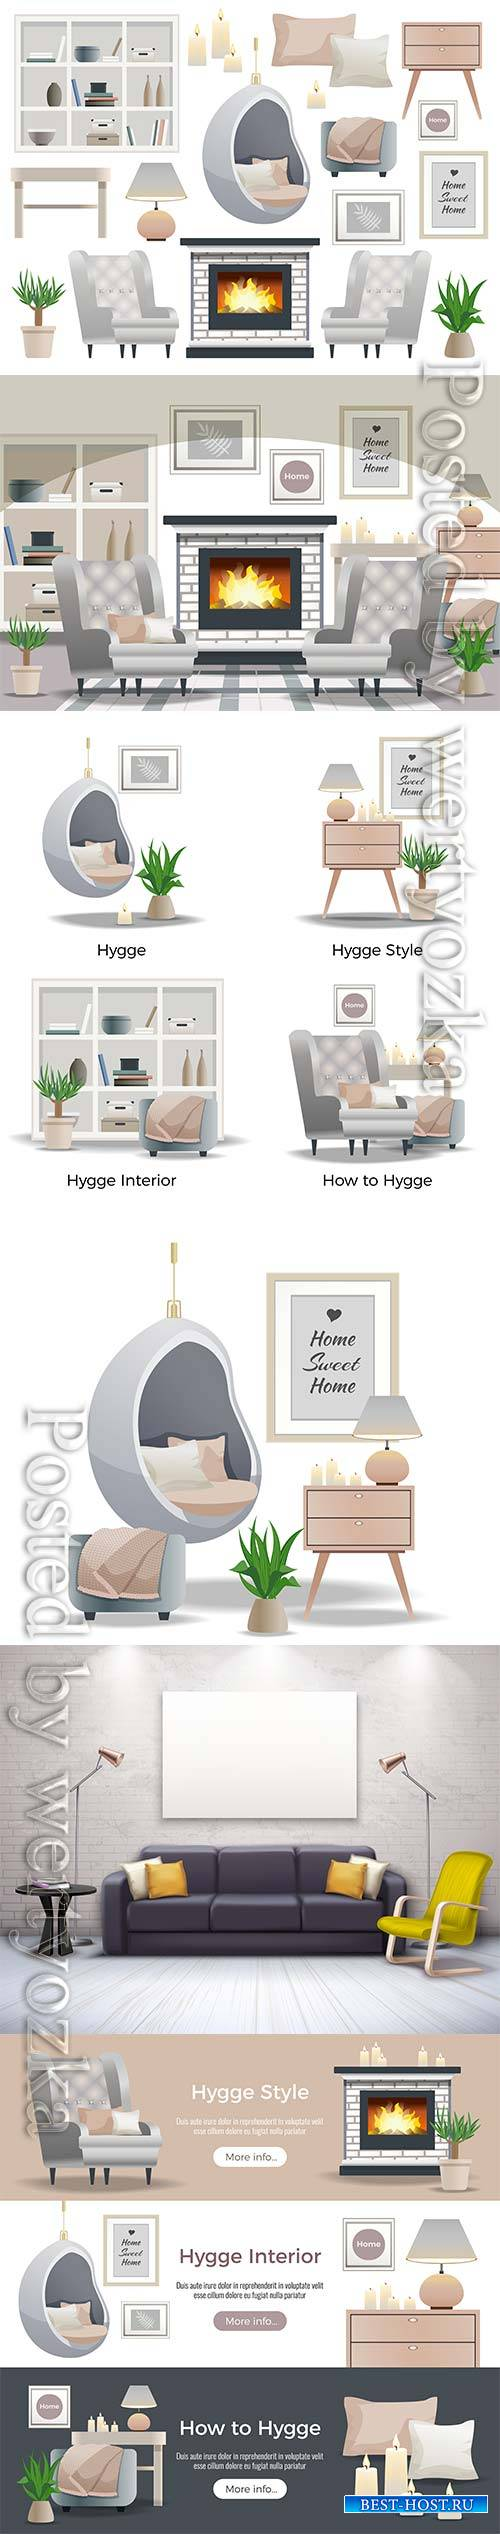 Hygge style interior isometric design element vector collection